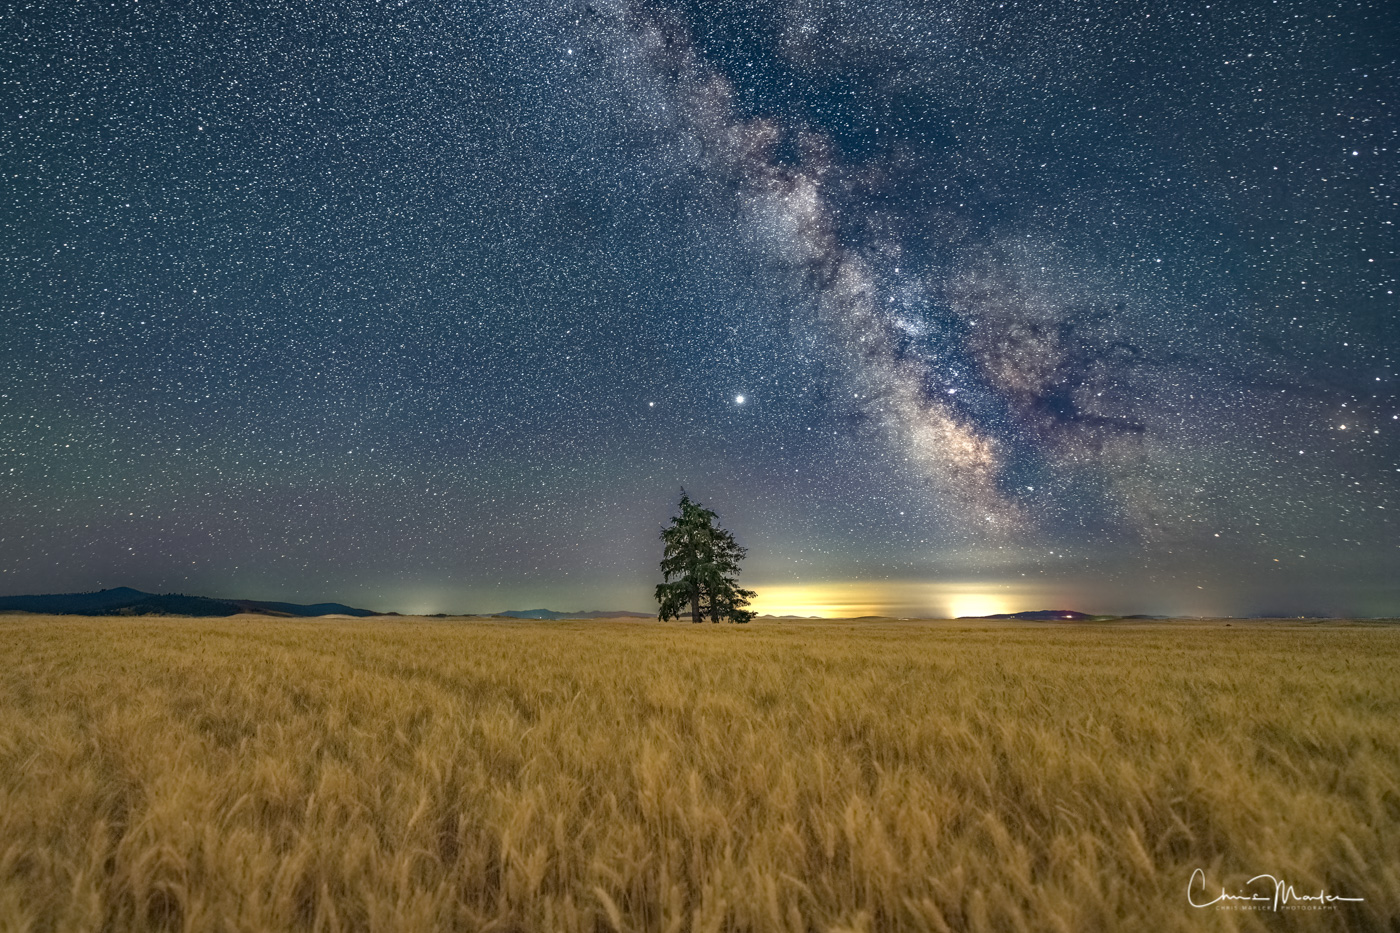 Milky Way rising above the Palouse country in eastern Washington.  Jupiter and Saturn can be seen directly above the lone tree...